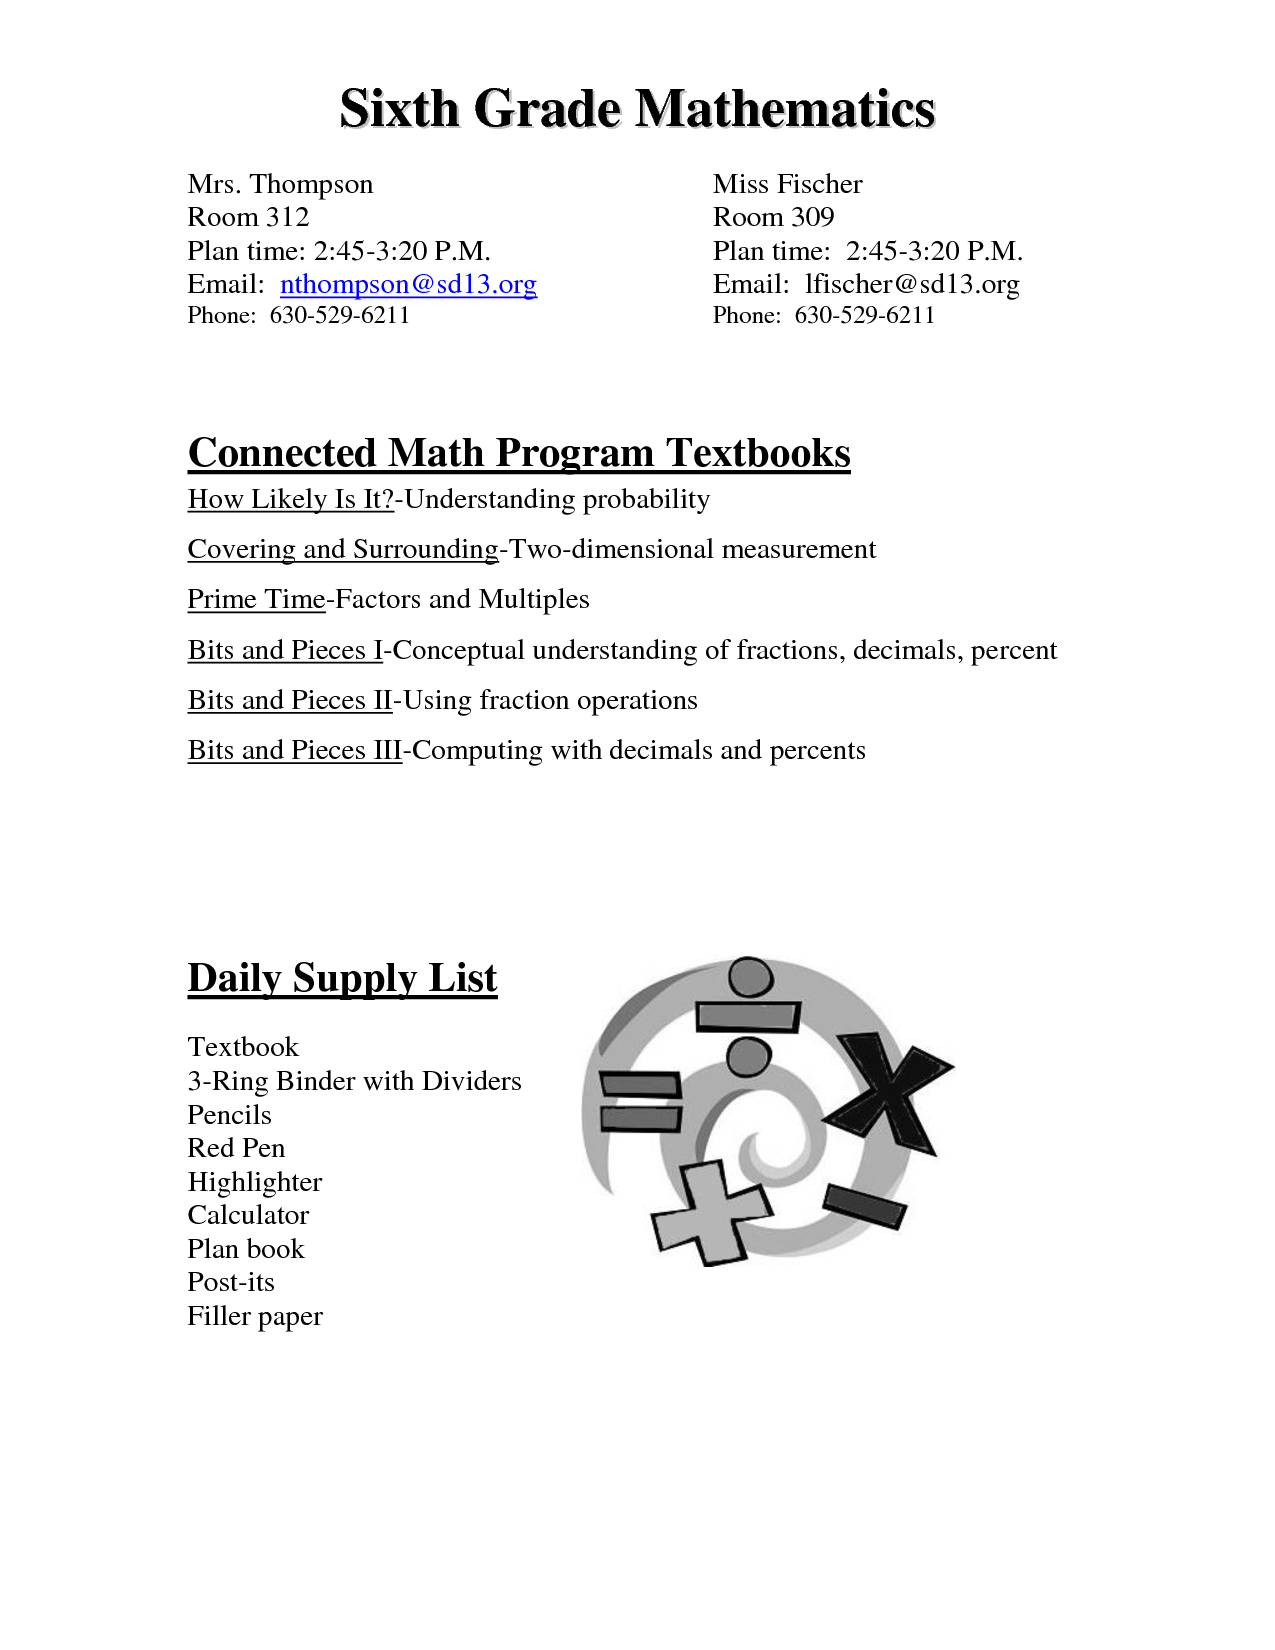 Worksheet 6th Grade Math Printable Worksheets 7 best images of 6th grade math worksheets printable worksheets